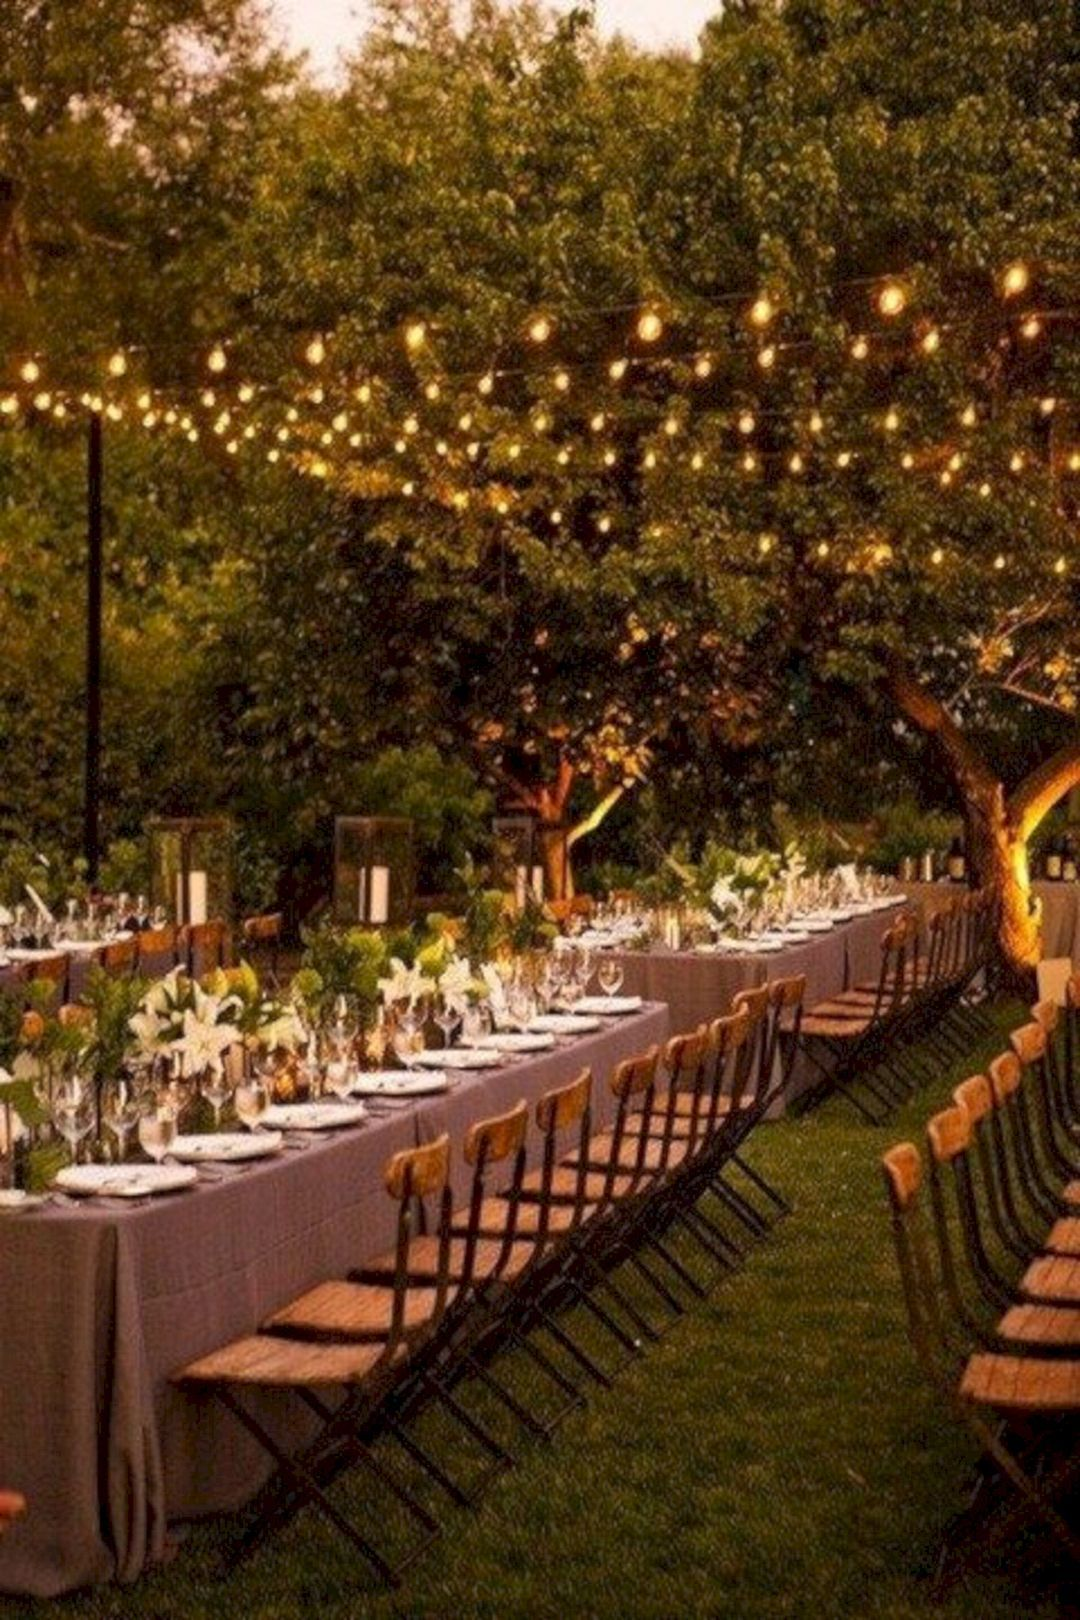 23 Elegant Outdoor Wedding Lighting Design Ideas For Fantastic Wedding Party